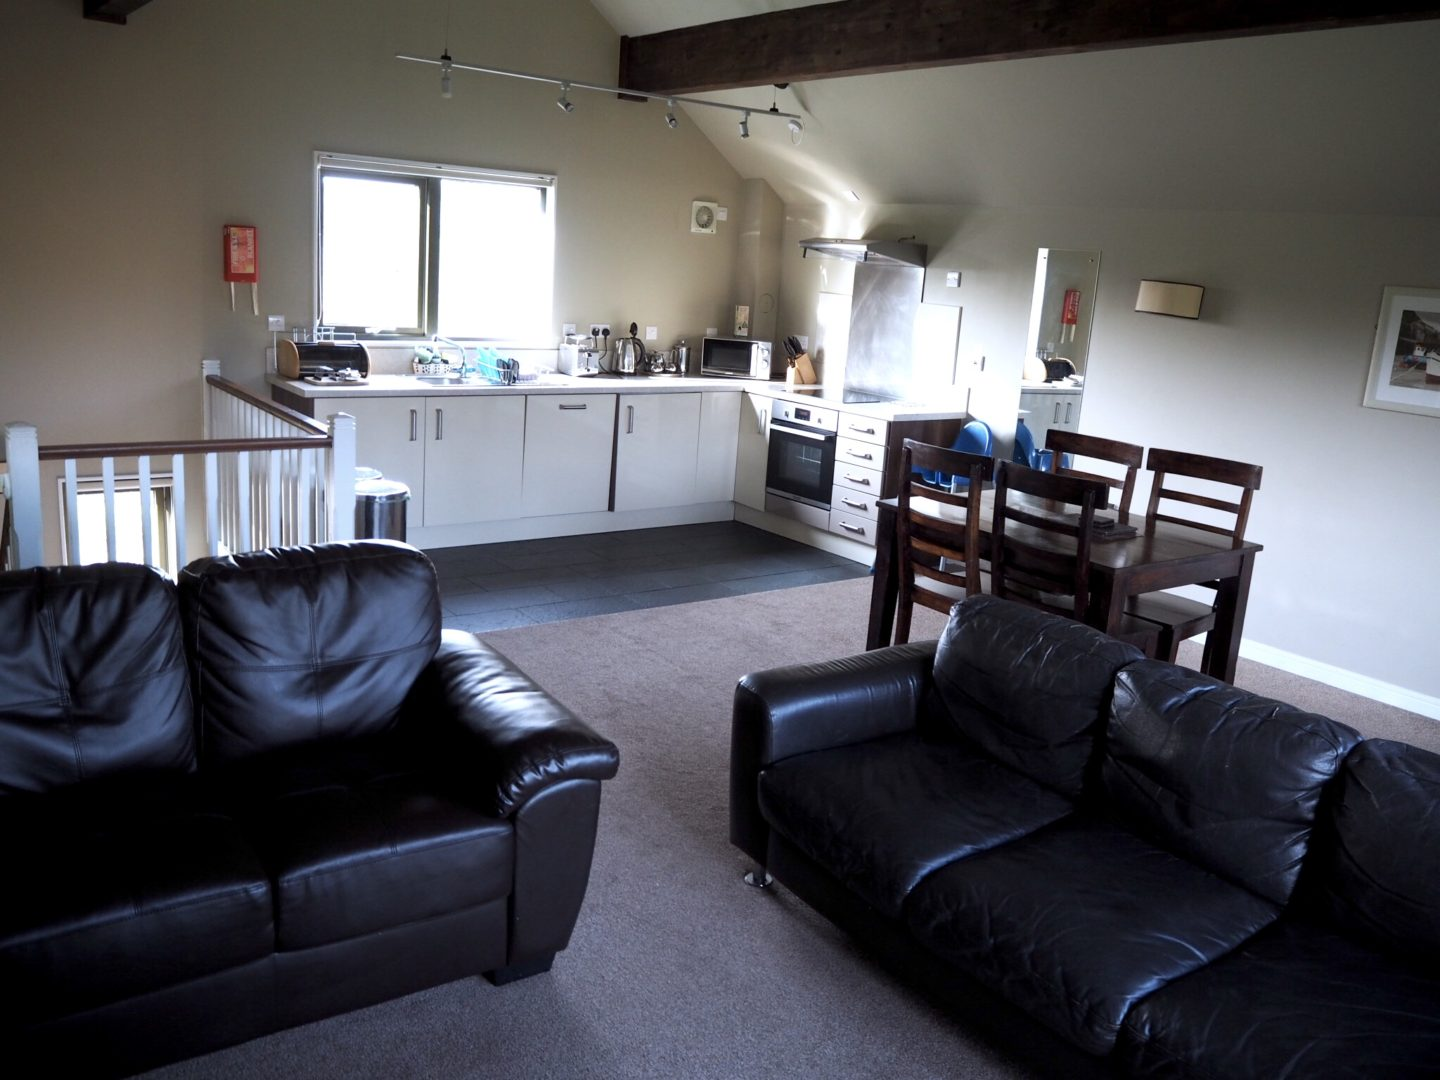 RAMSAY LODGE bluestone wales